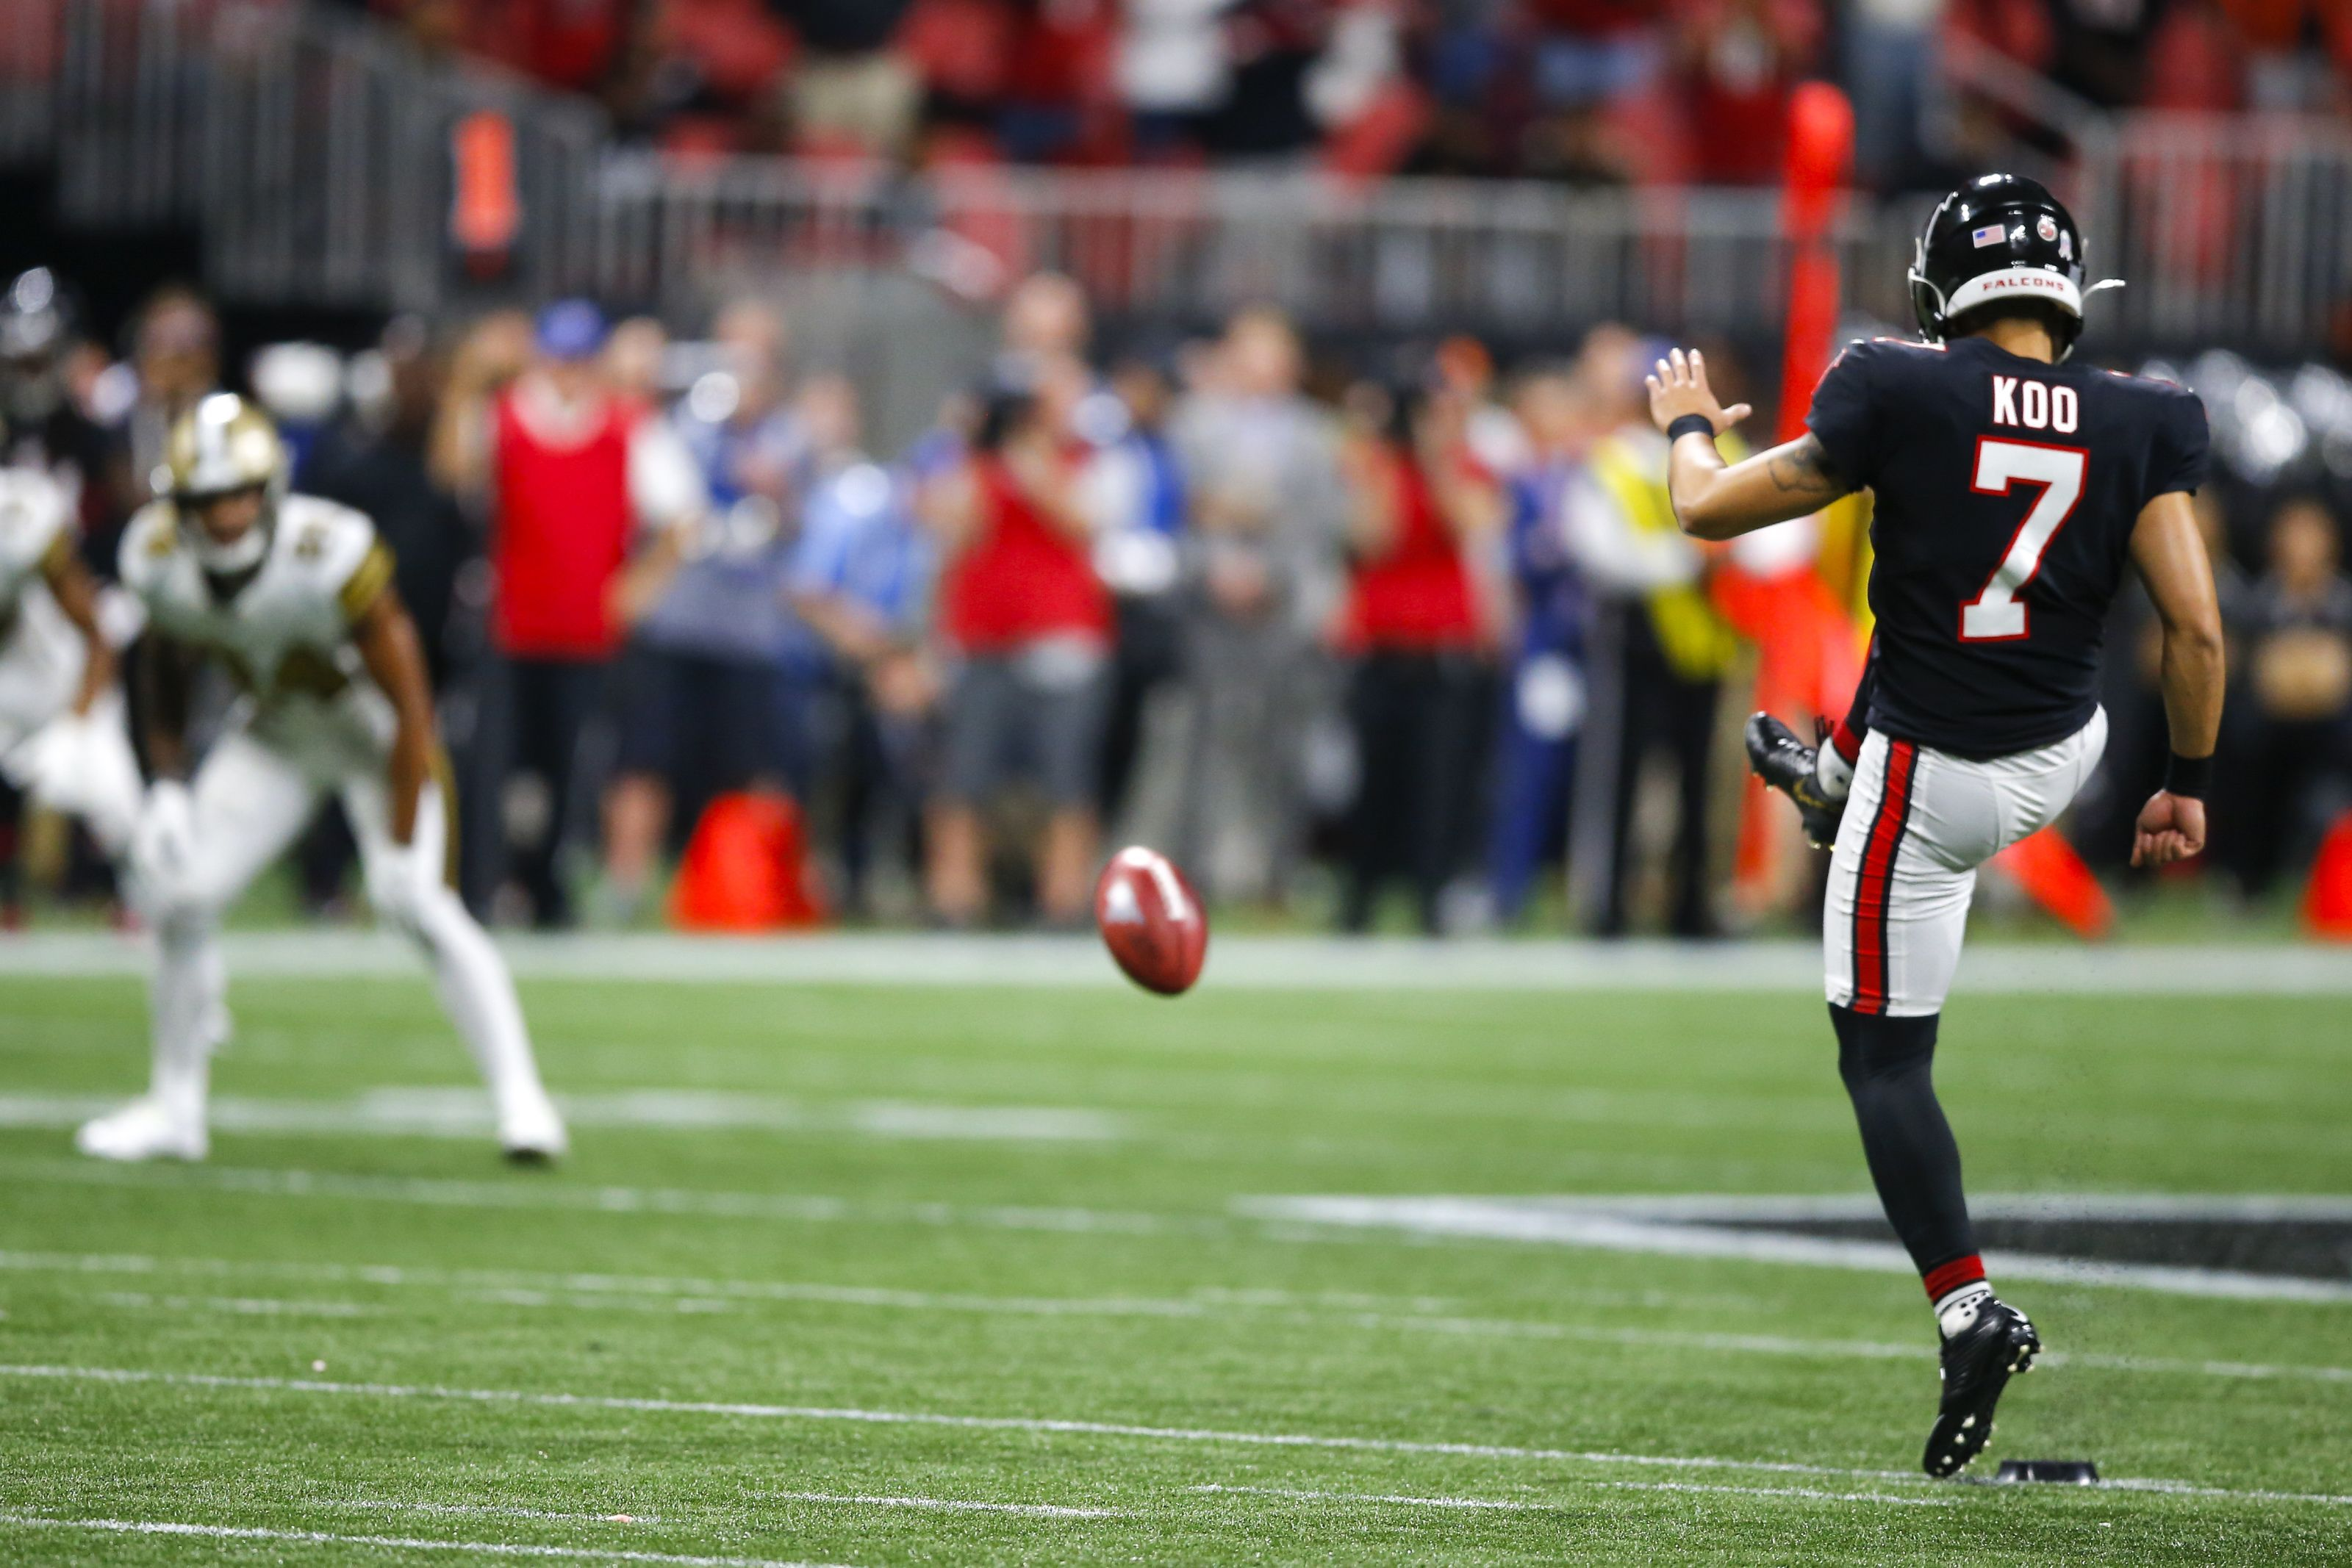 Atlanta Falcons Younghoe Koo Is Nfl S Best National Football League News Atlanta Falcons Kicker Younghoe Koo Converted Three Su Nfl Football League Nfl News